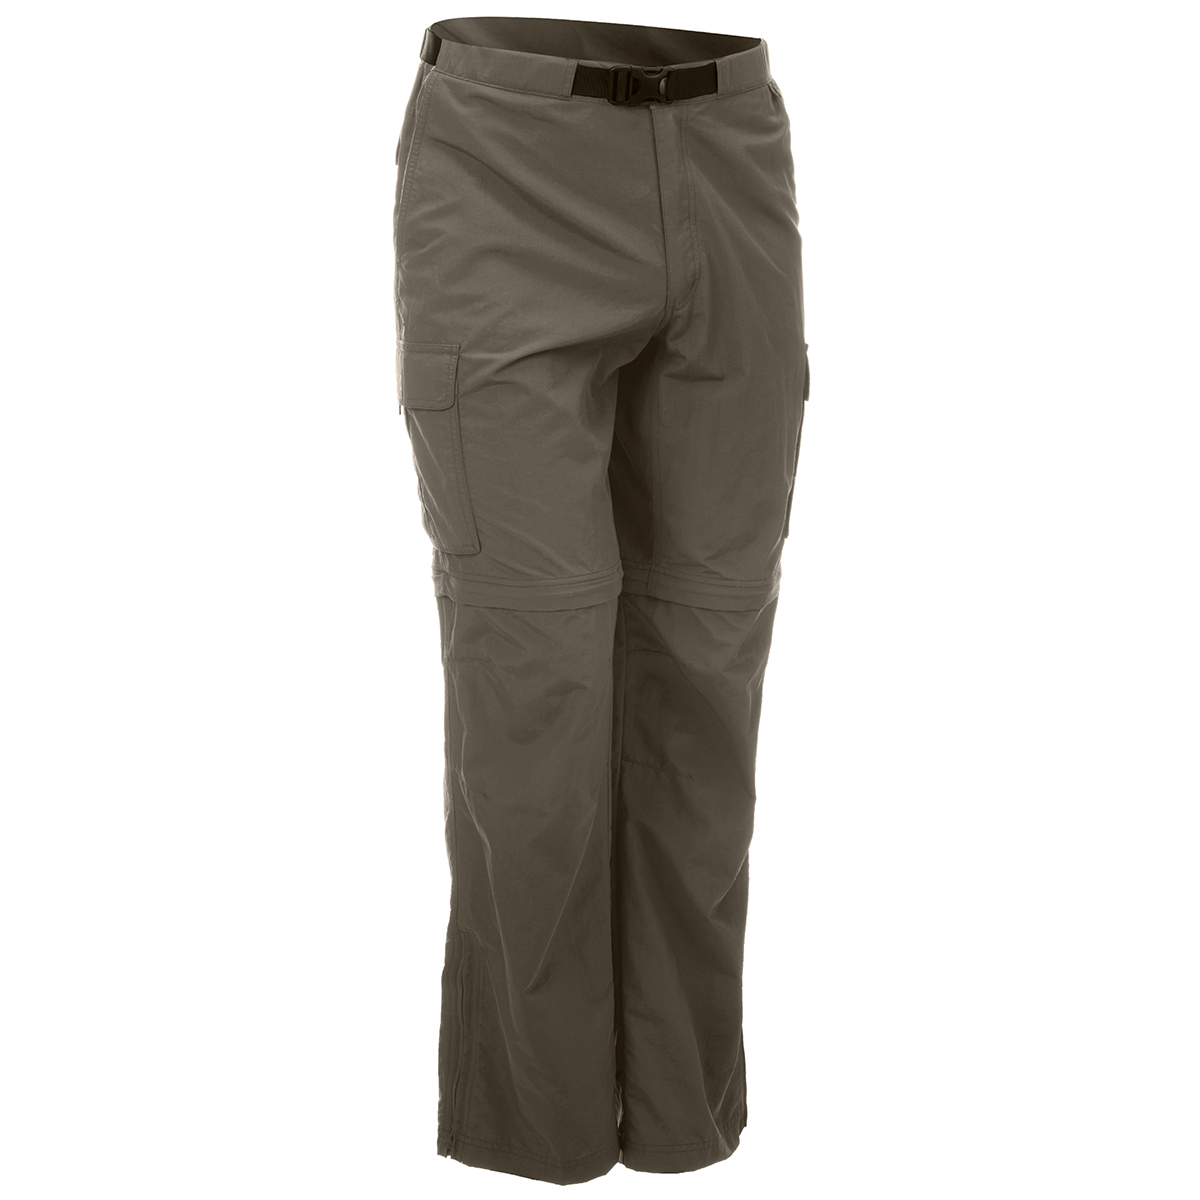 Ems Men's Camp Cargo Zip-Off Pants - Green, 28/32